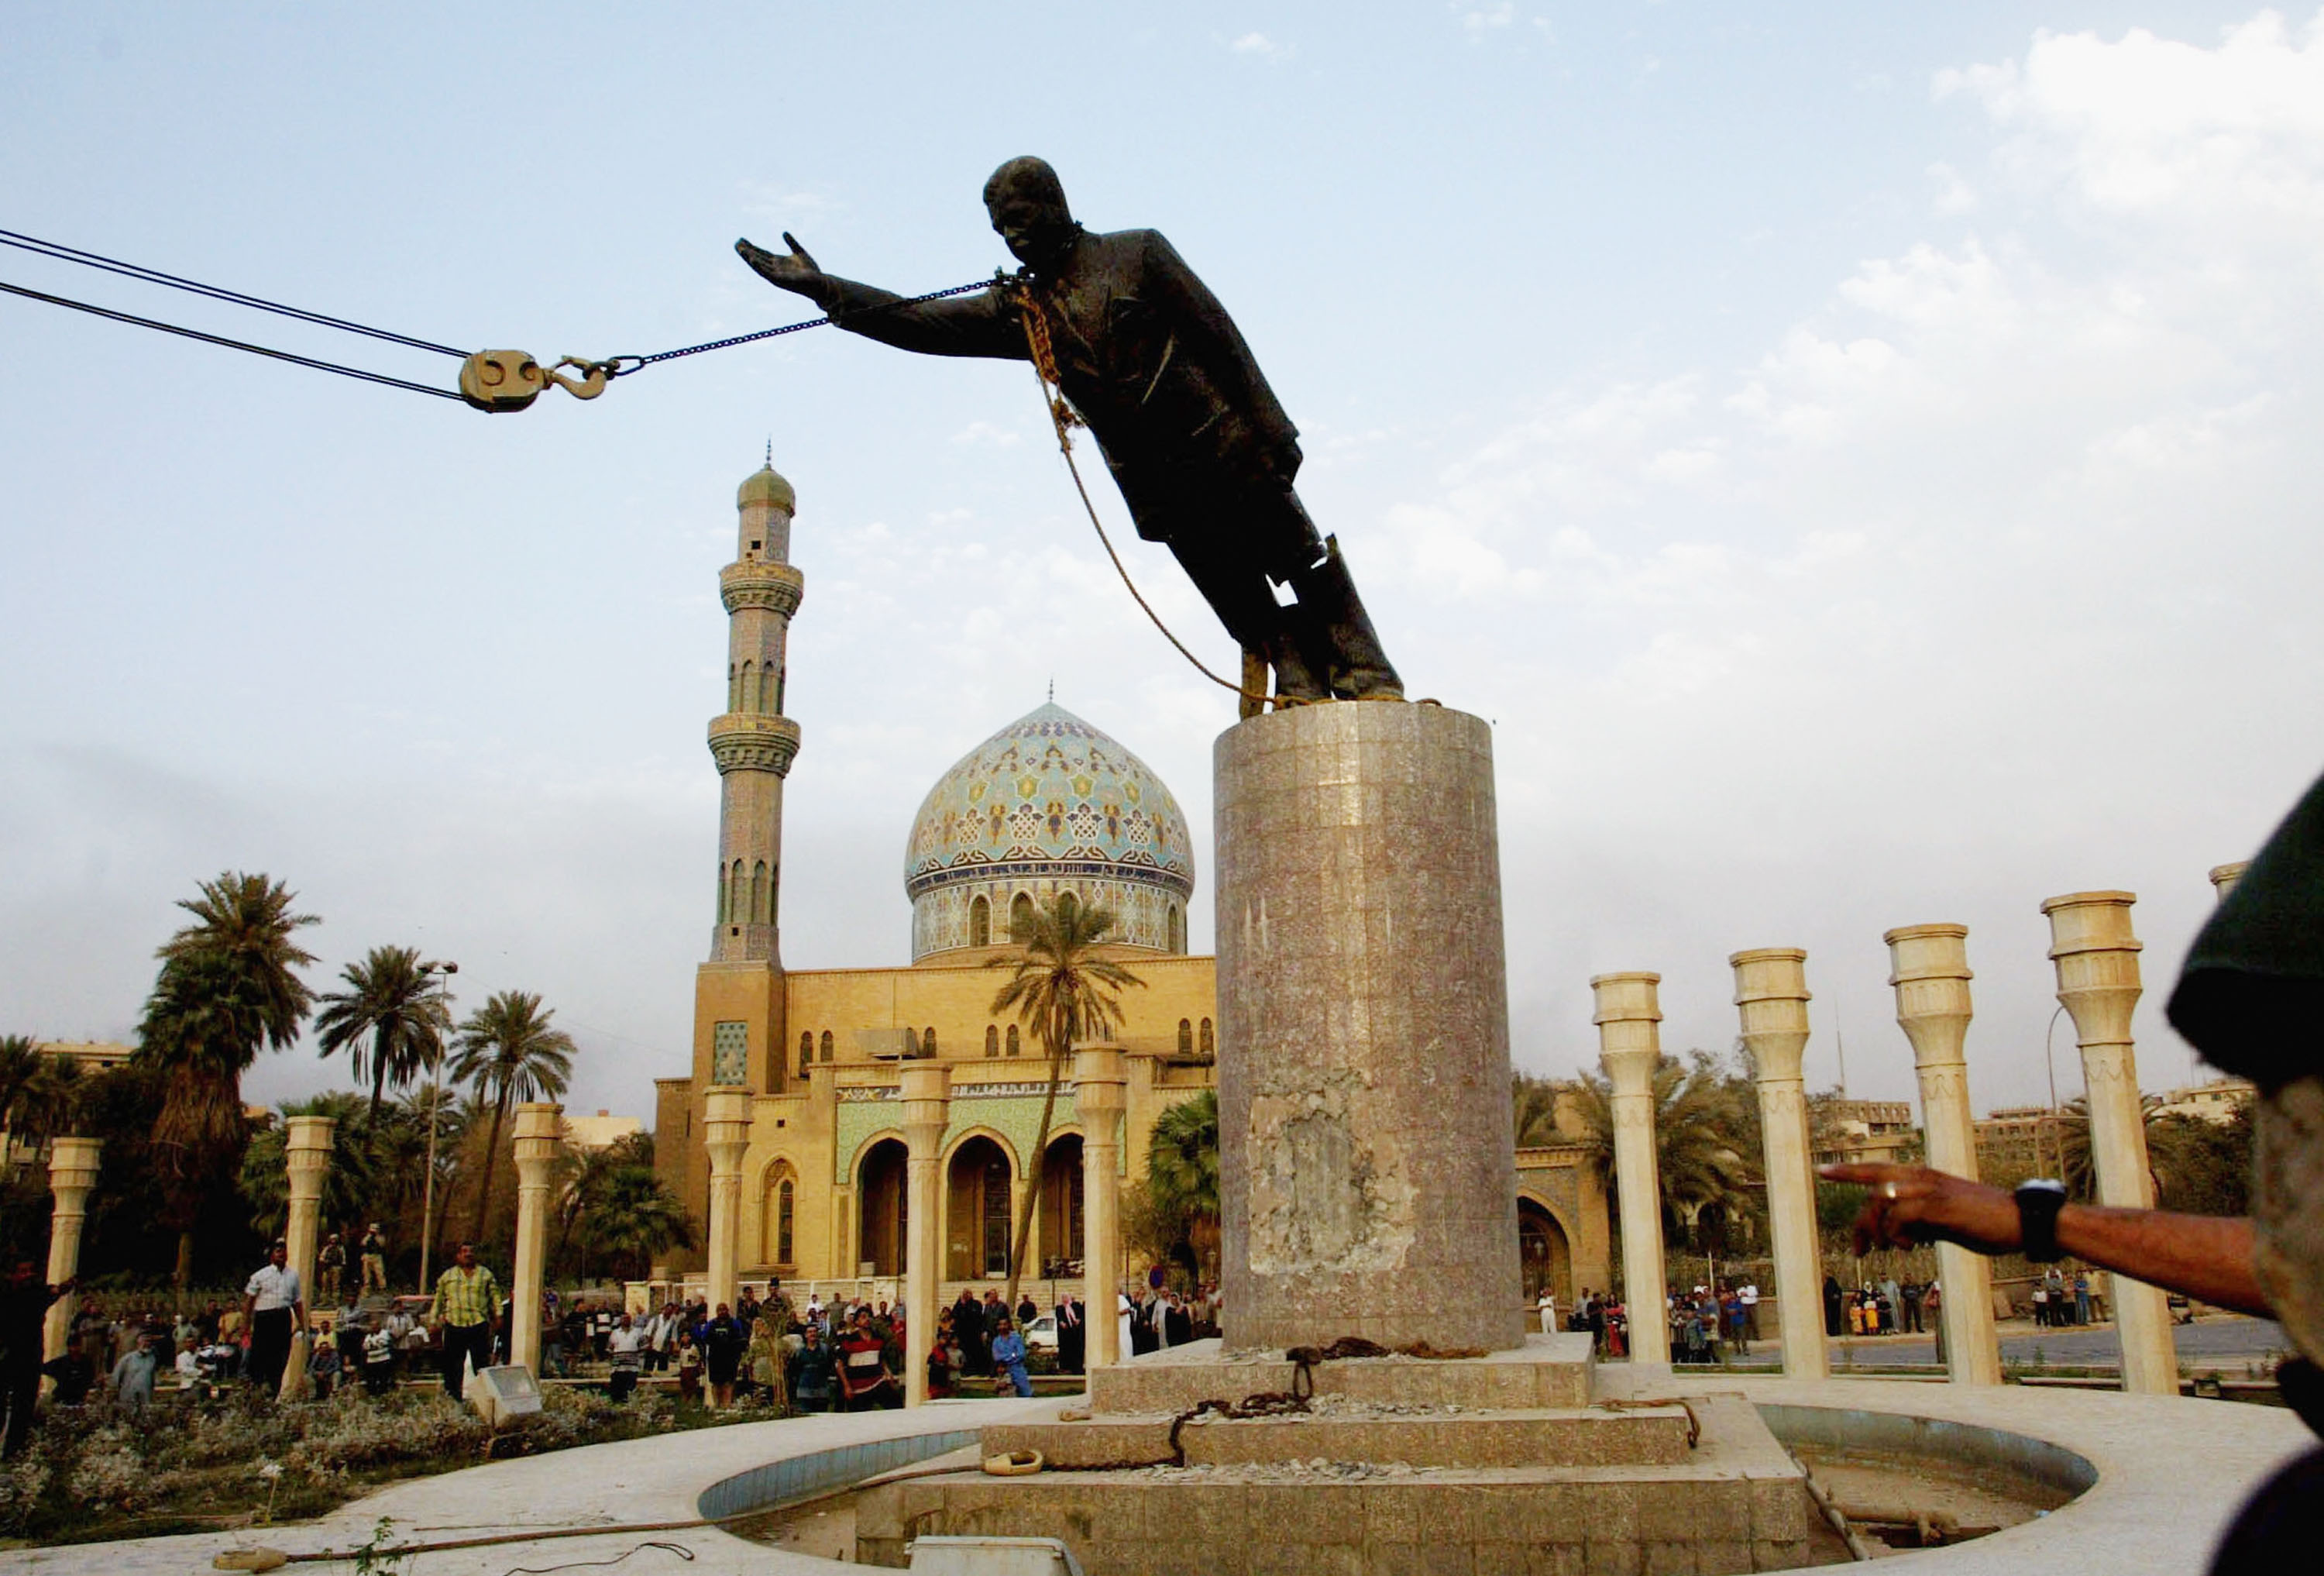 The Guy Who Toppled Saddam Hussein's Statue Wishes He Hadn't | Time